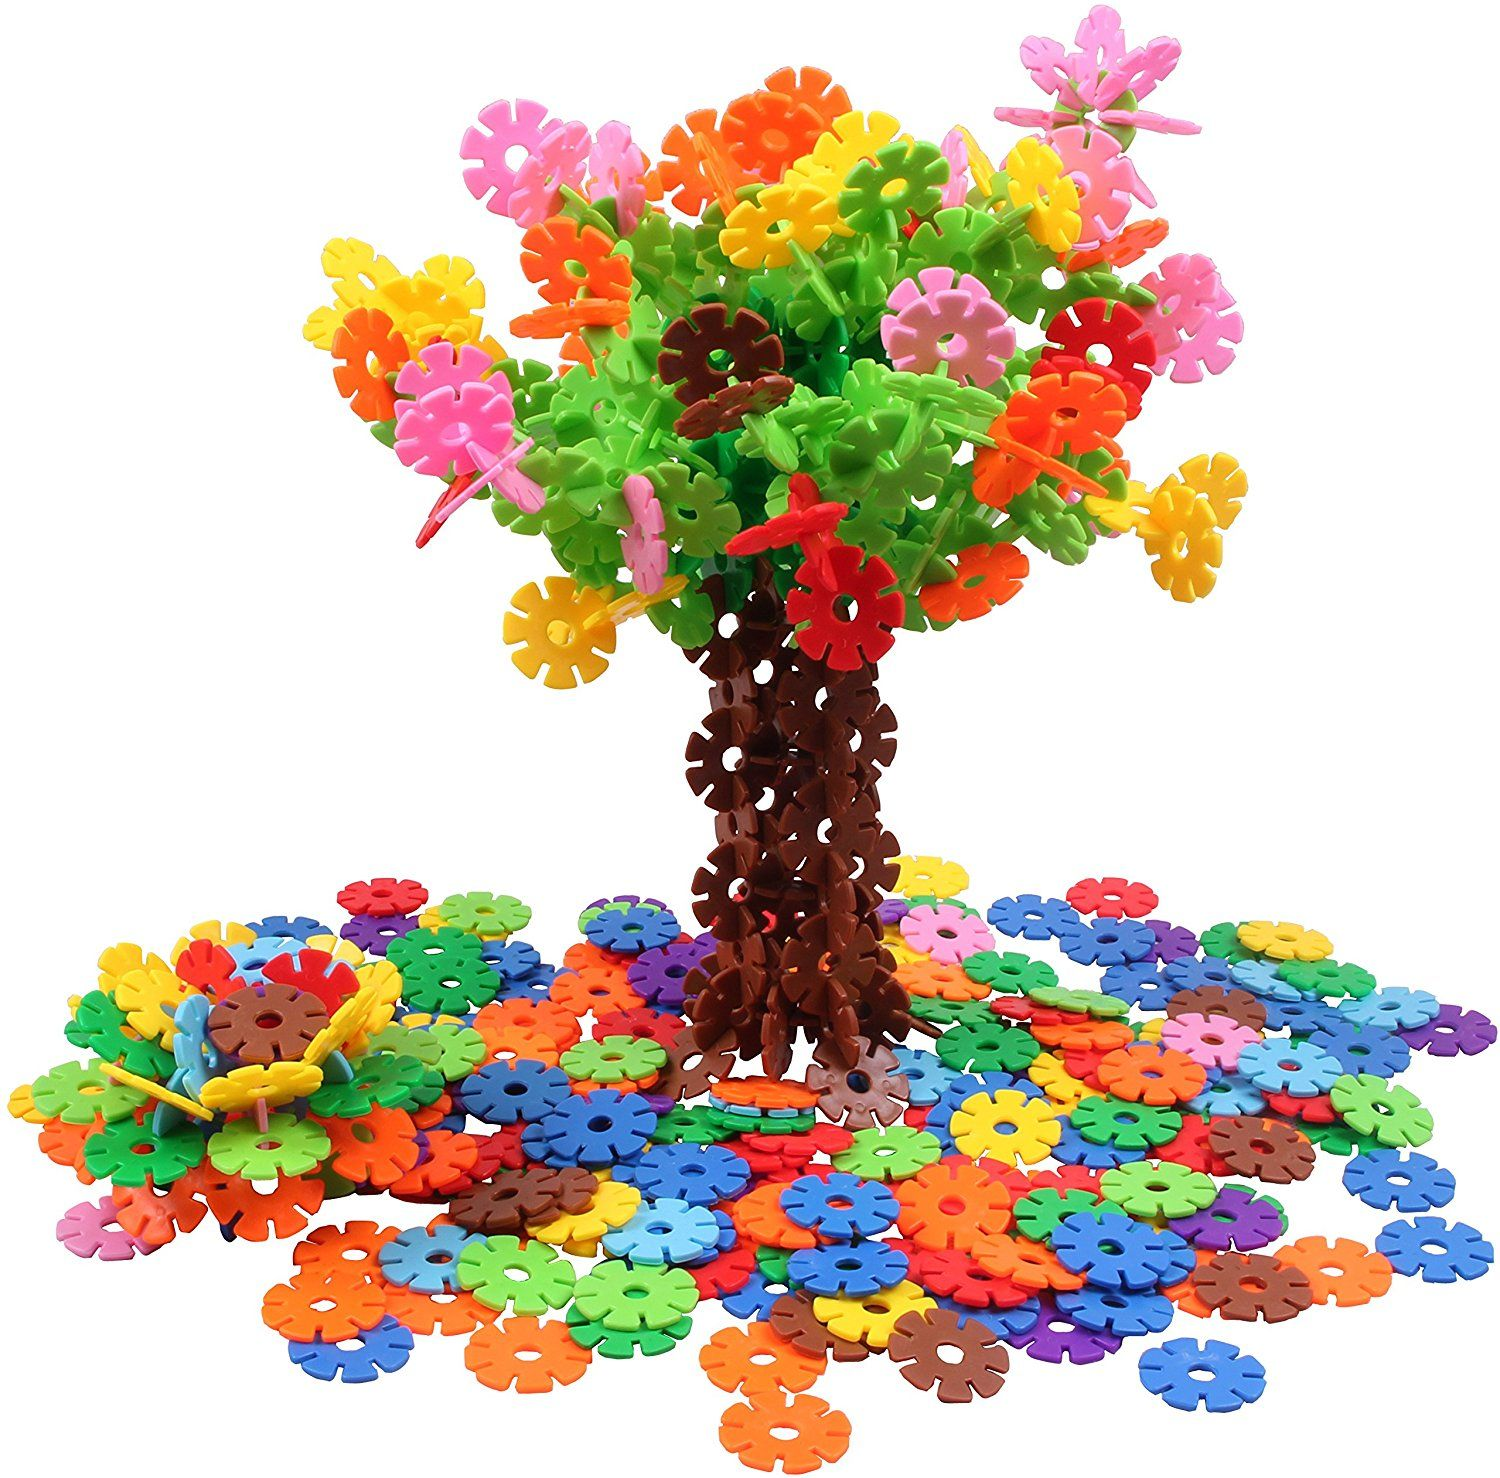 Amazon VIAHART Brain Flakes 500 Piece Interlocking Plastic